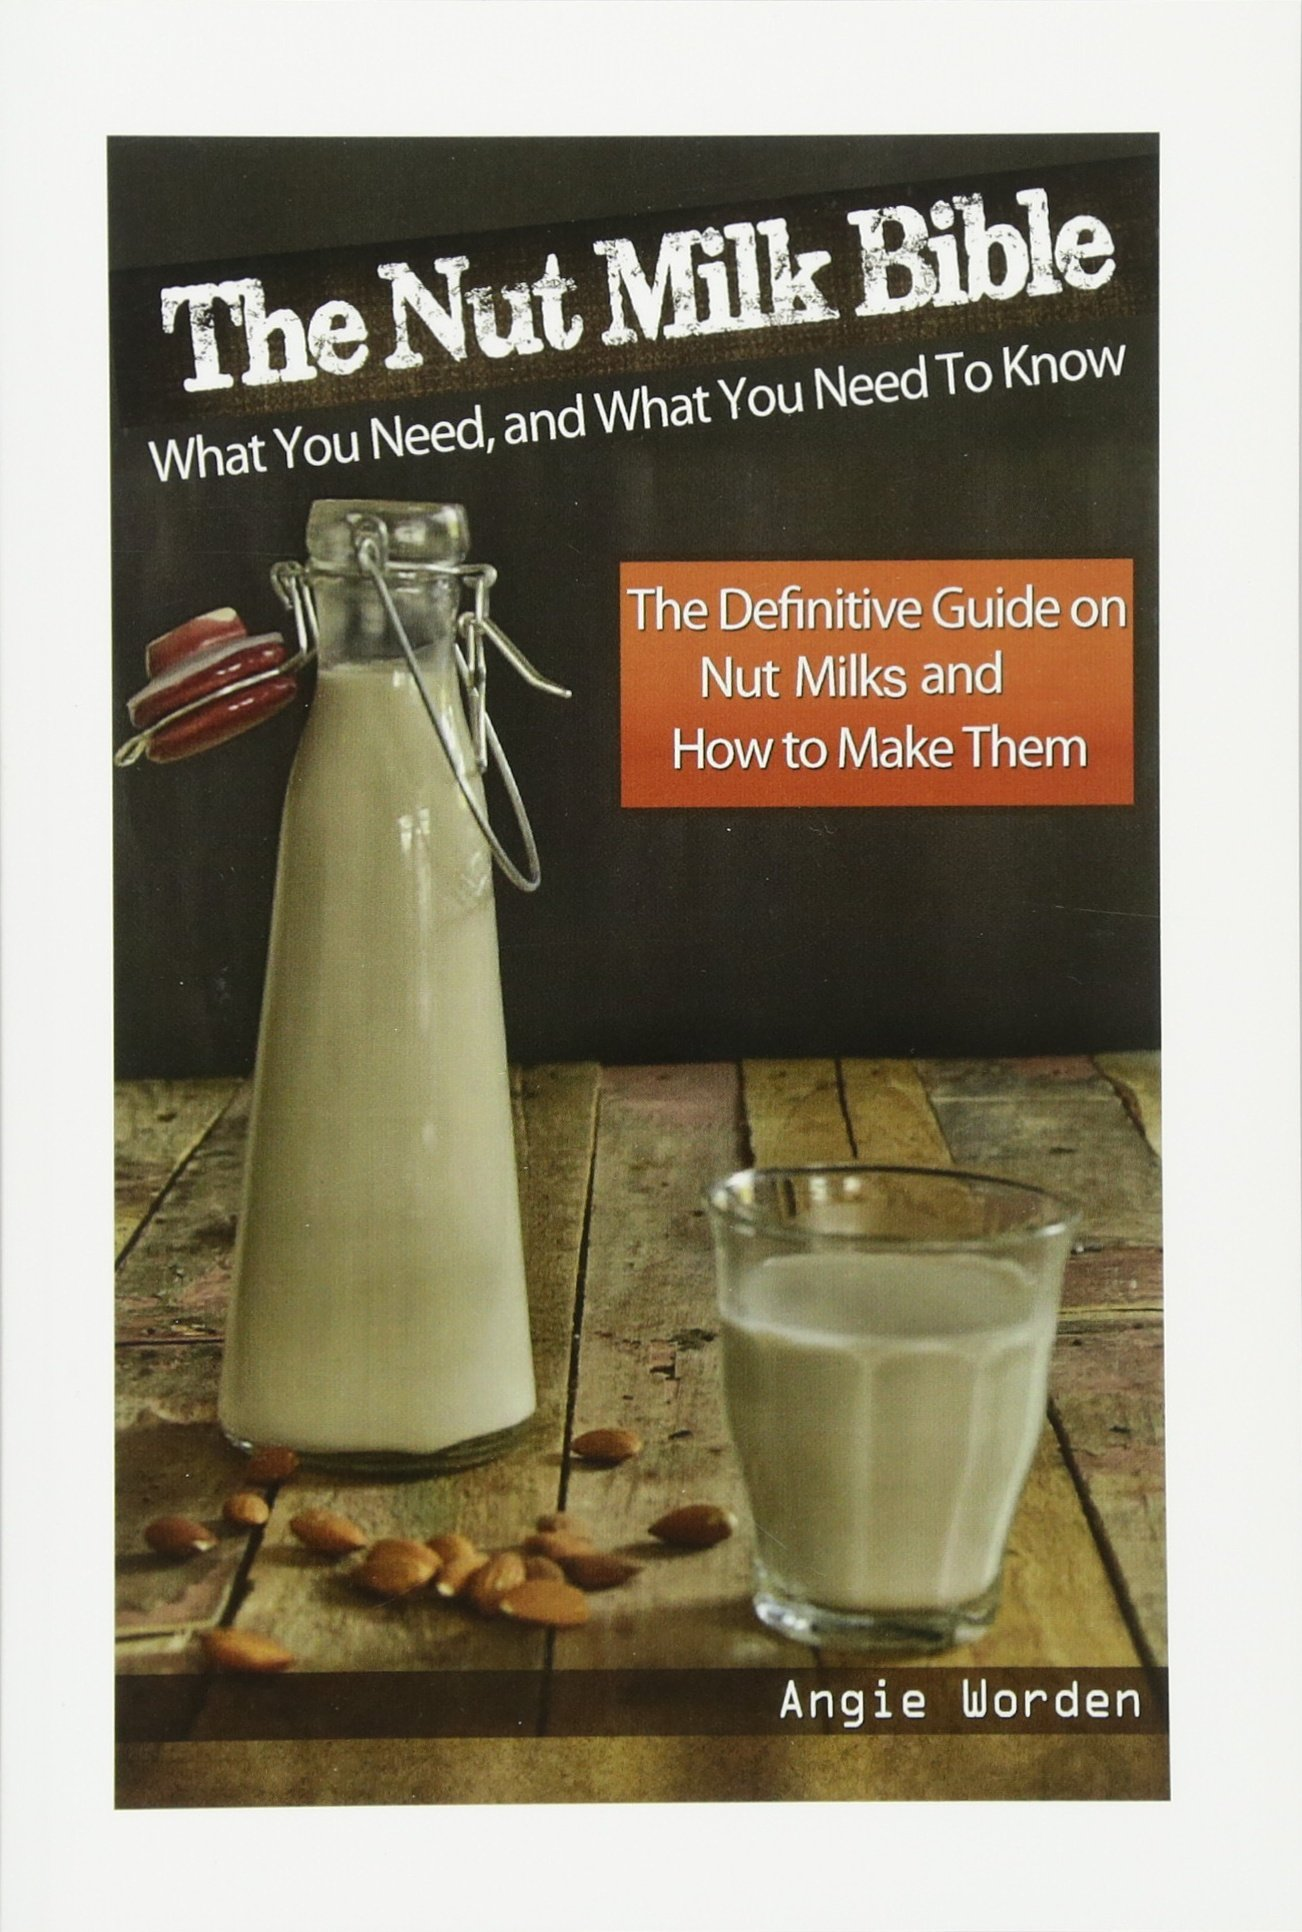 Nut Milk Bible Definitive Guide product image